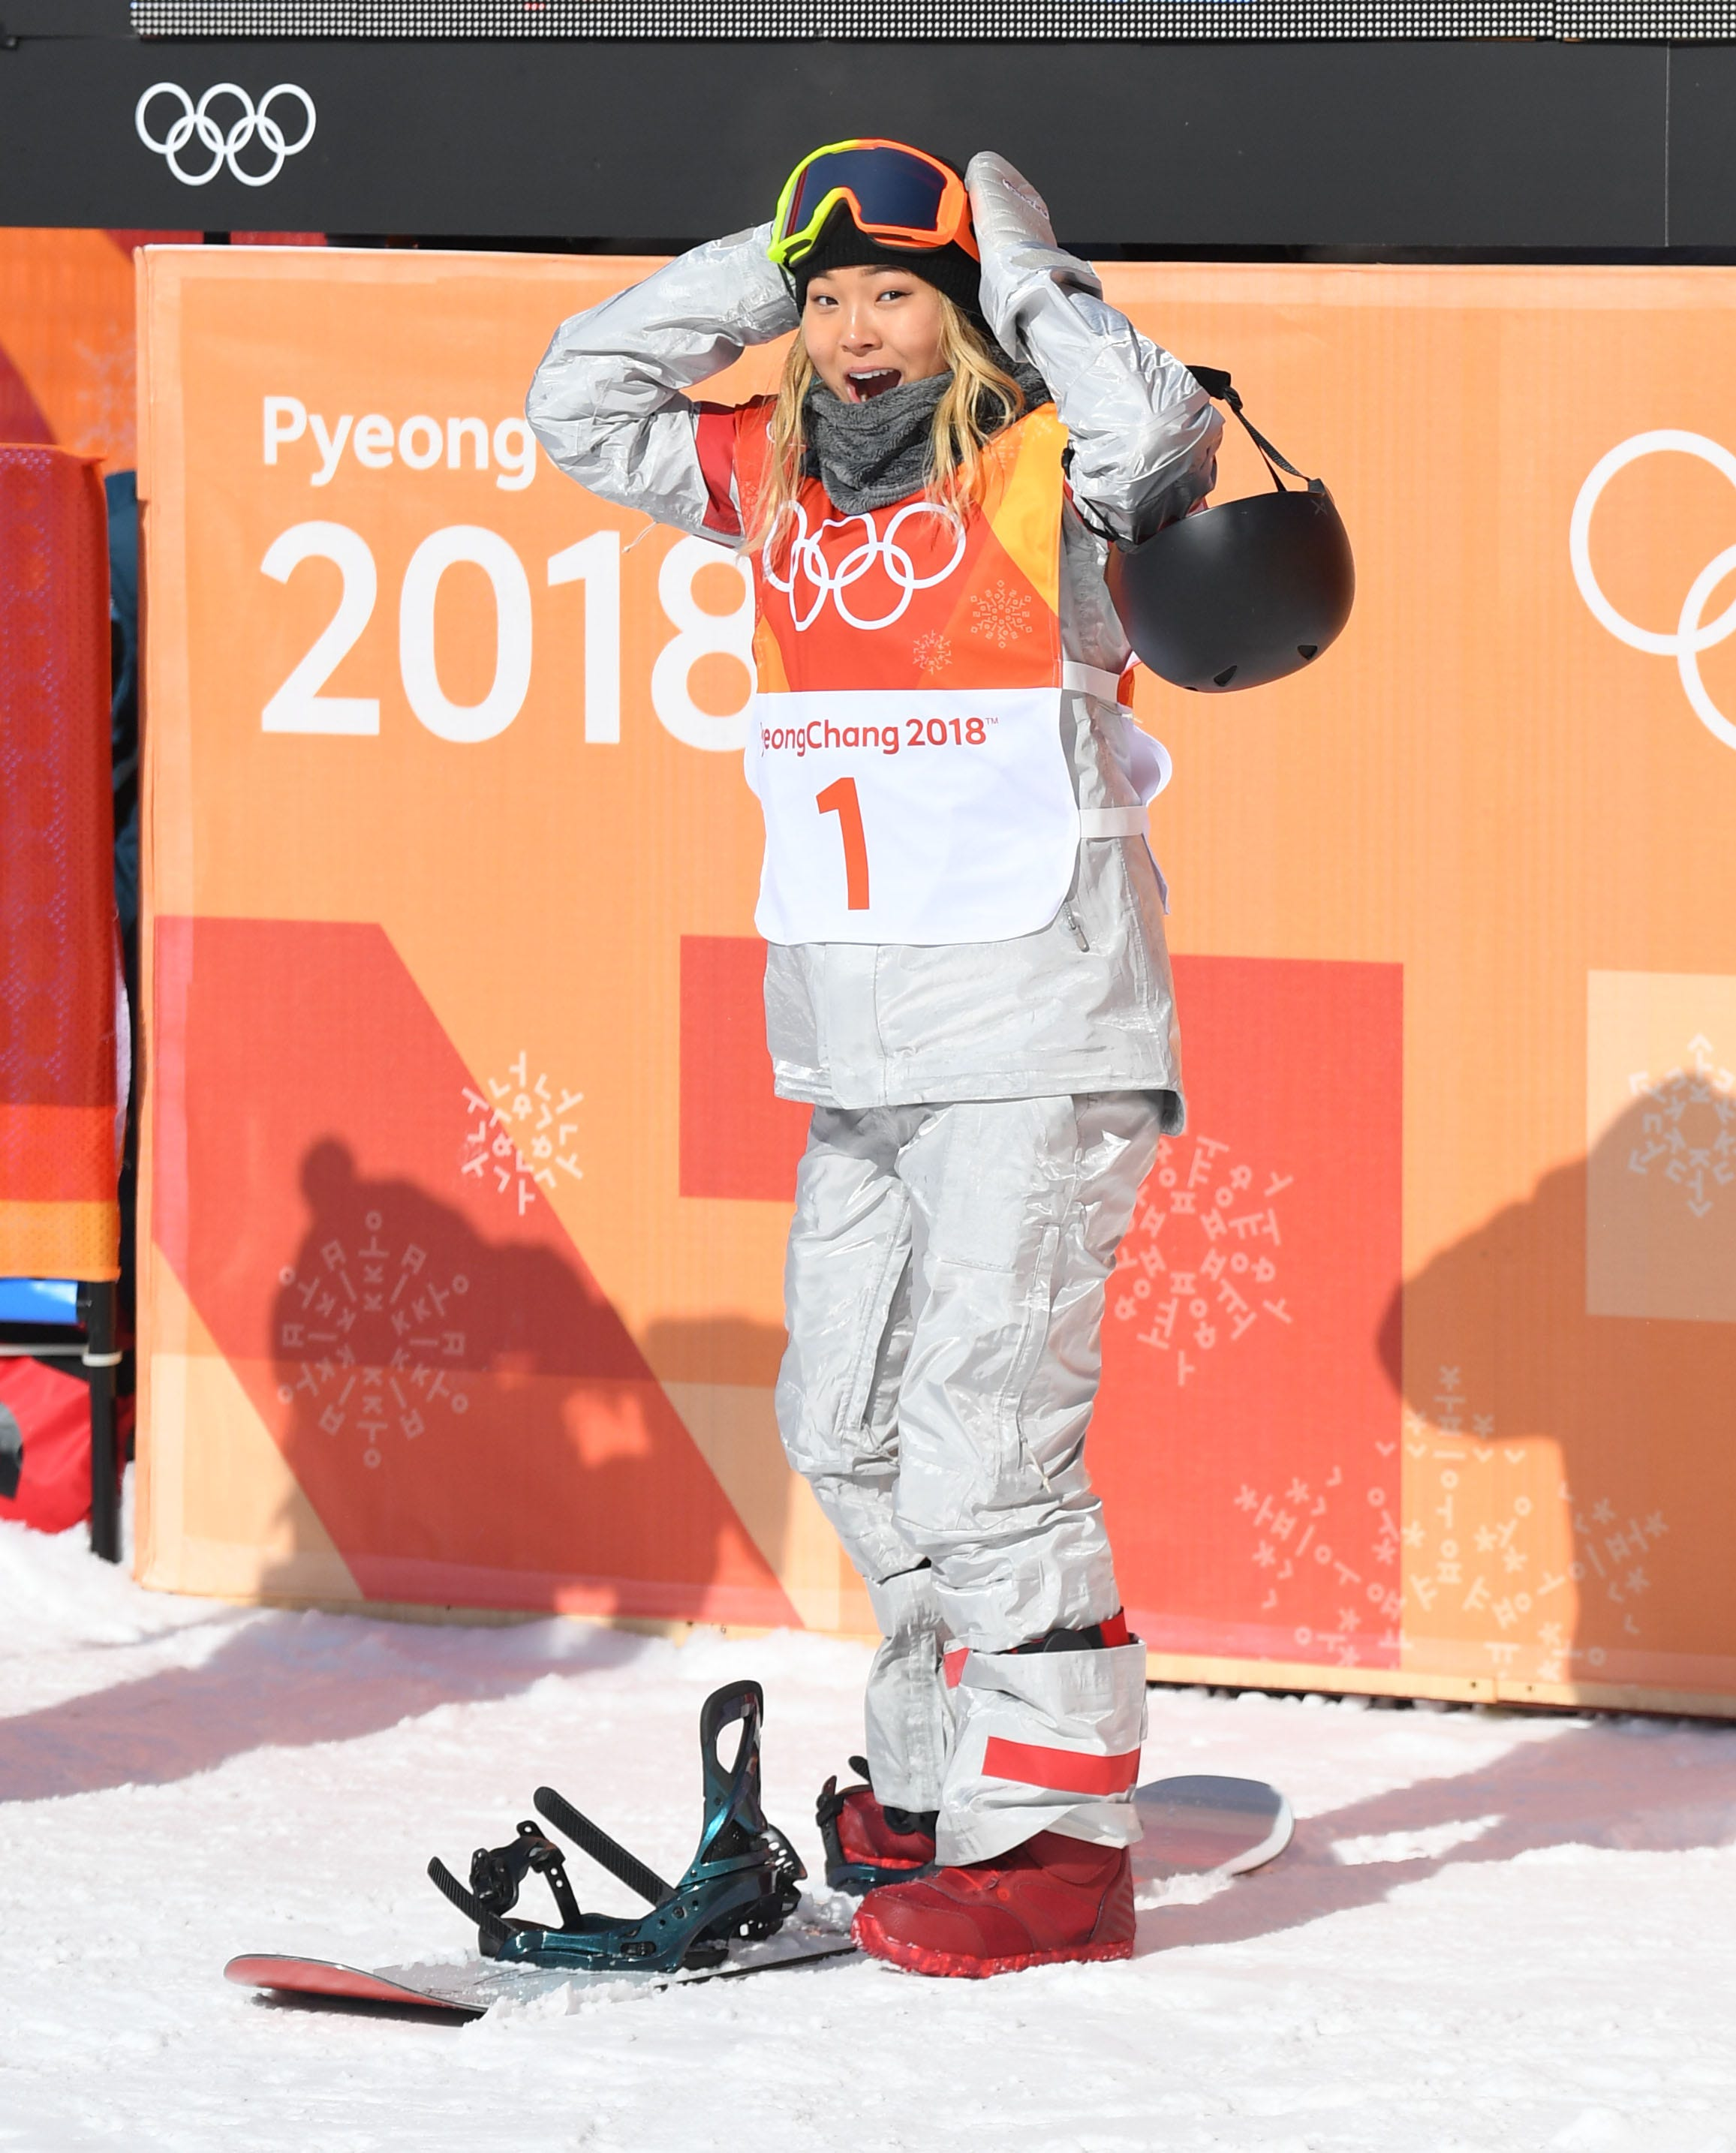 Olympic champion Chloe Kim gets the reward she really craves, ice cream